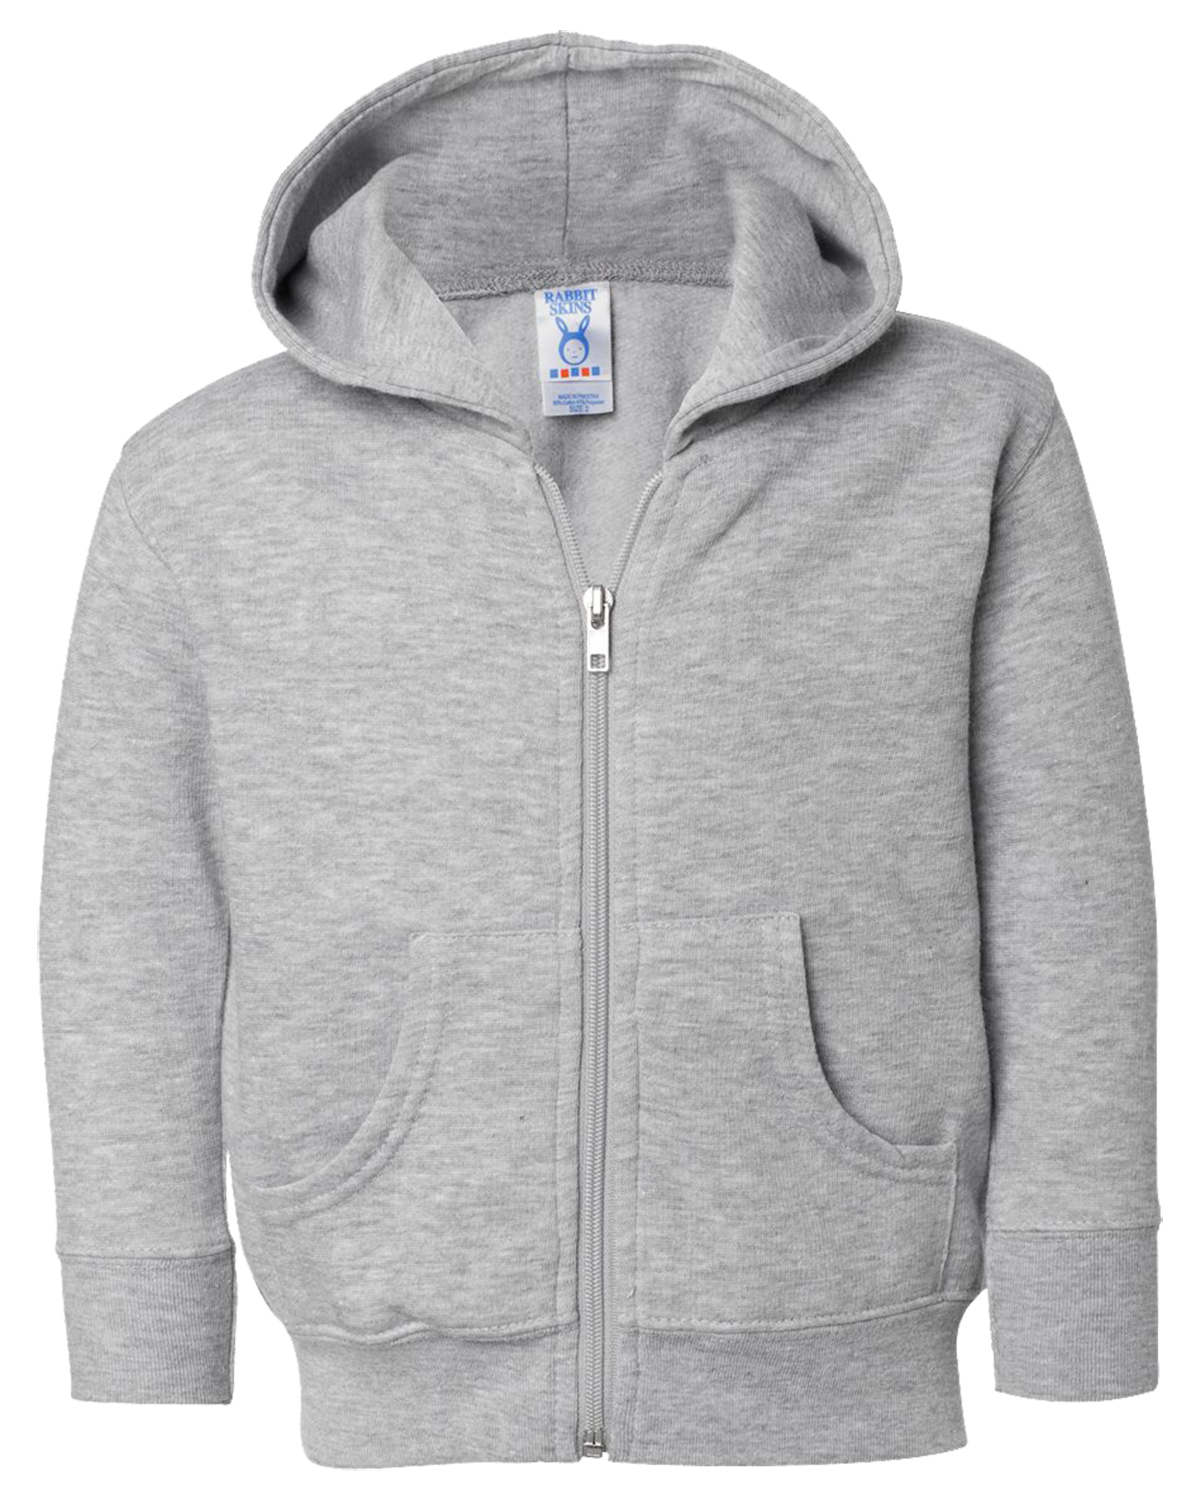 Rabbit Skins 3346 Toddlers Full-Zip Hoodie at GotApparel